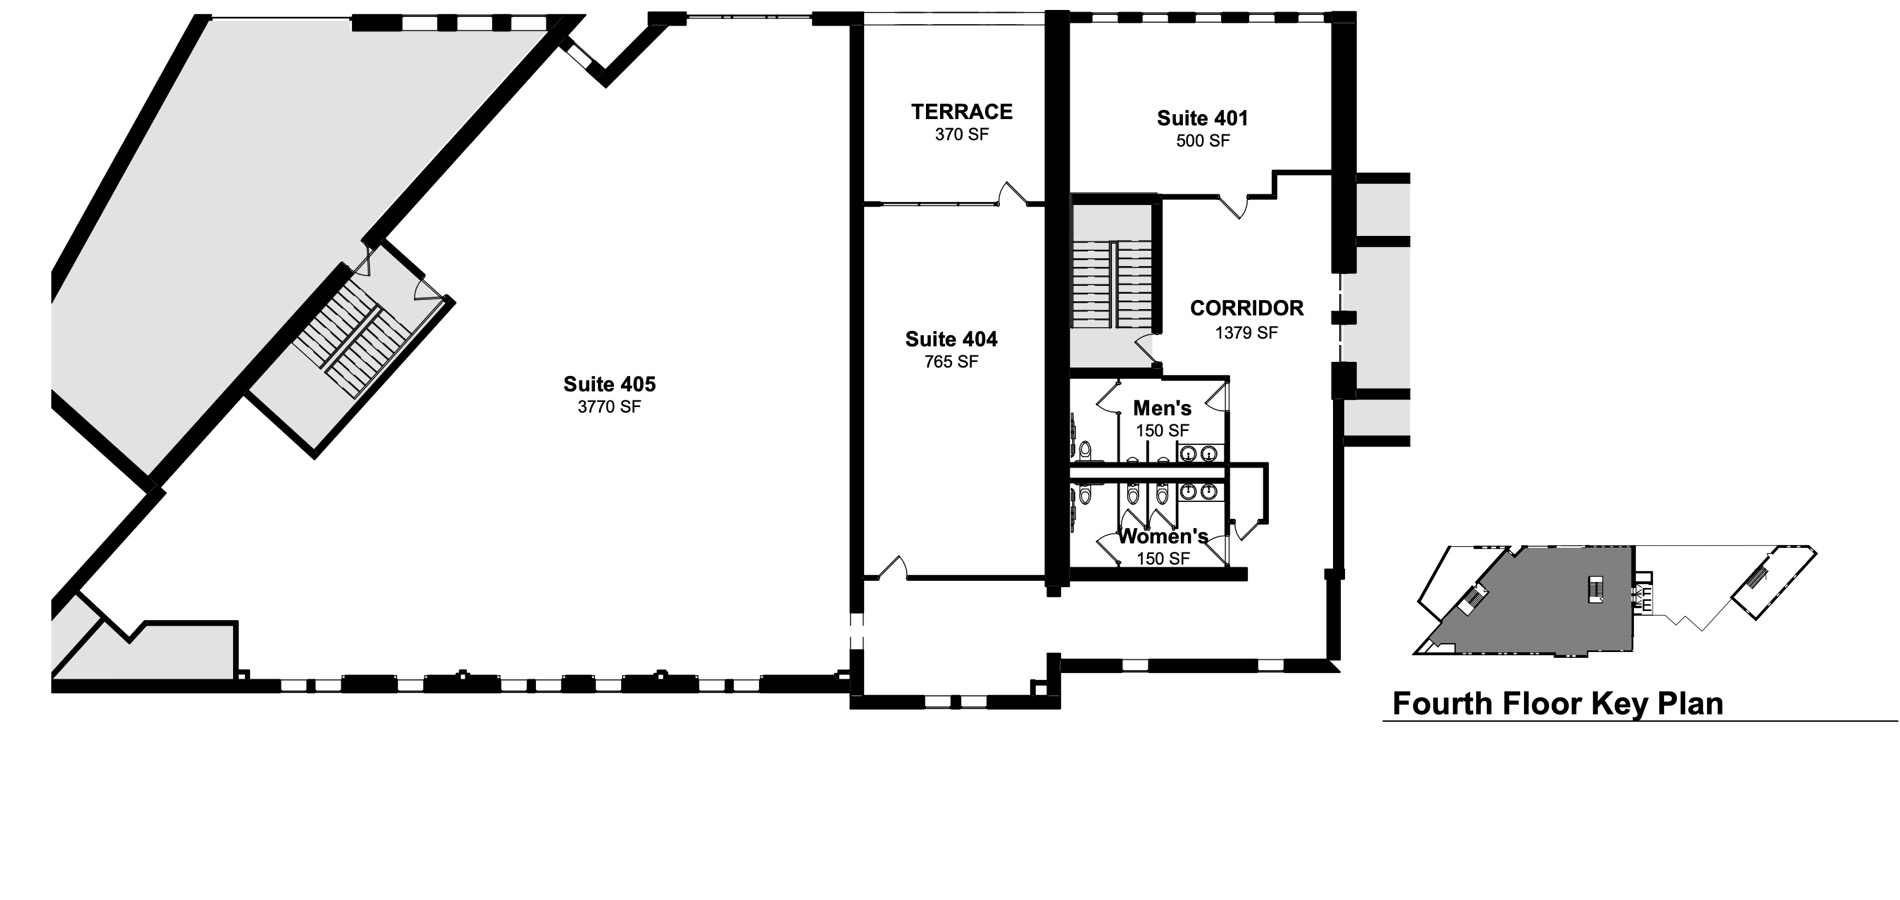 Suite-401-404-405 and Corridor